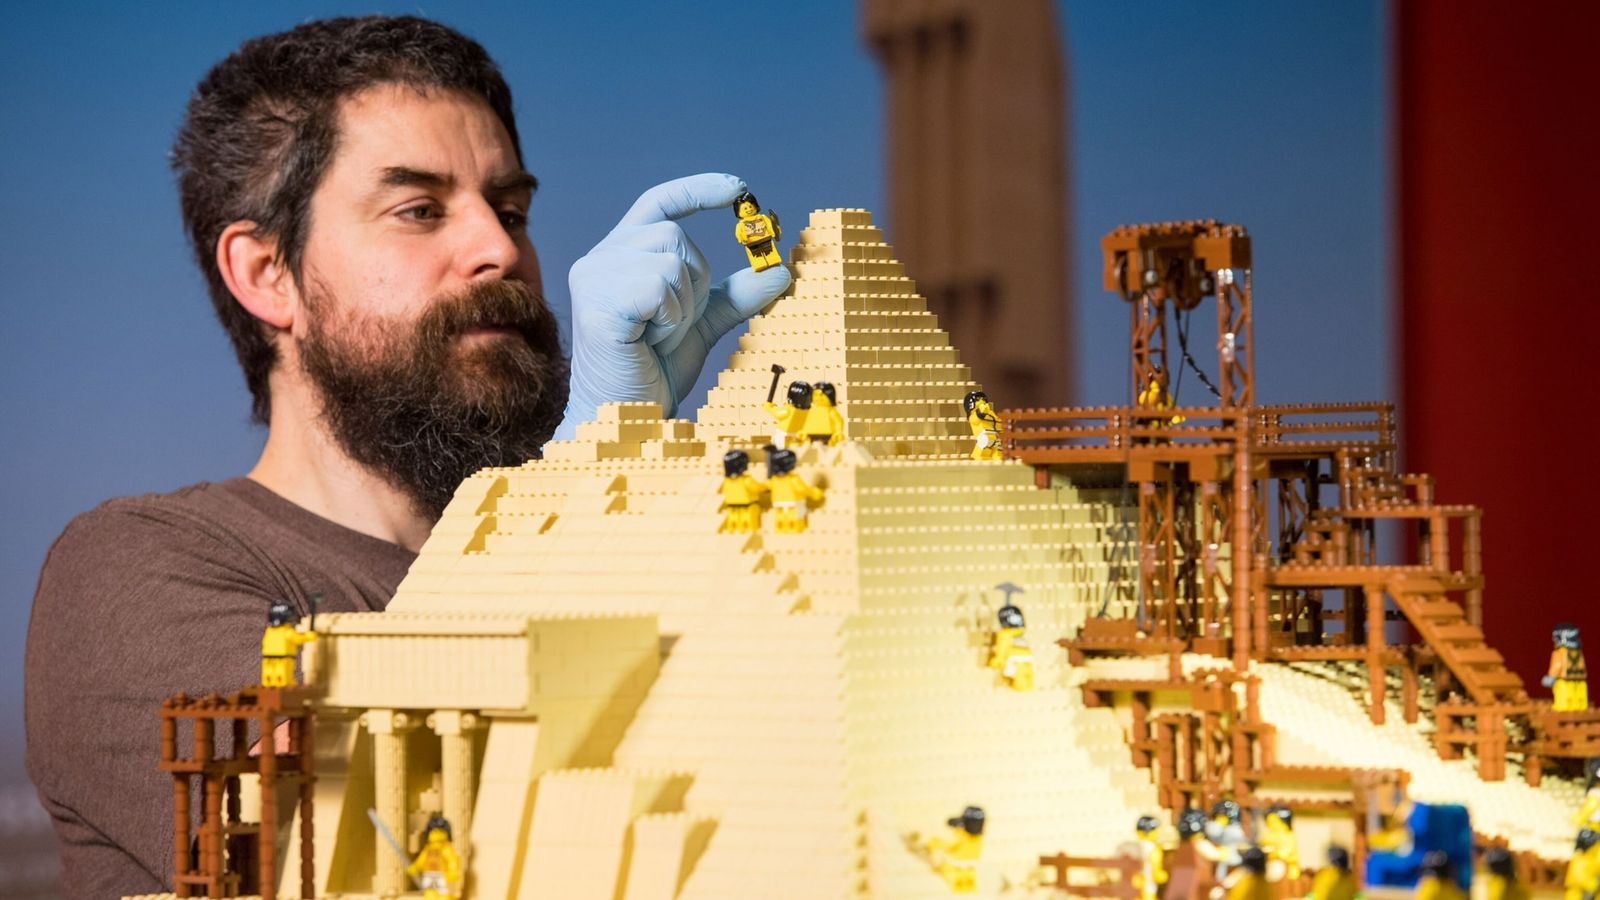 Adult fans of Legos like Phil Sofer, here building a model of the Great Pyramid of ...